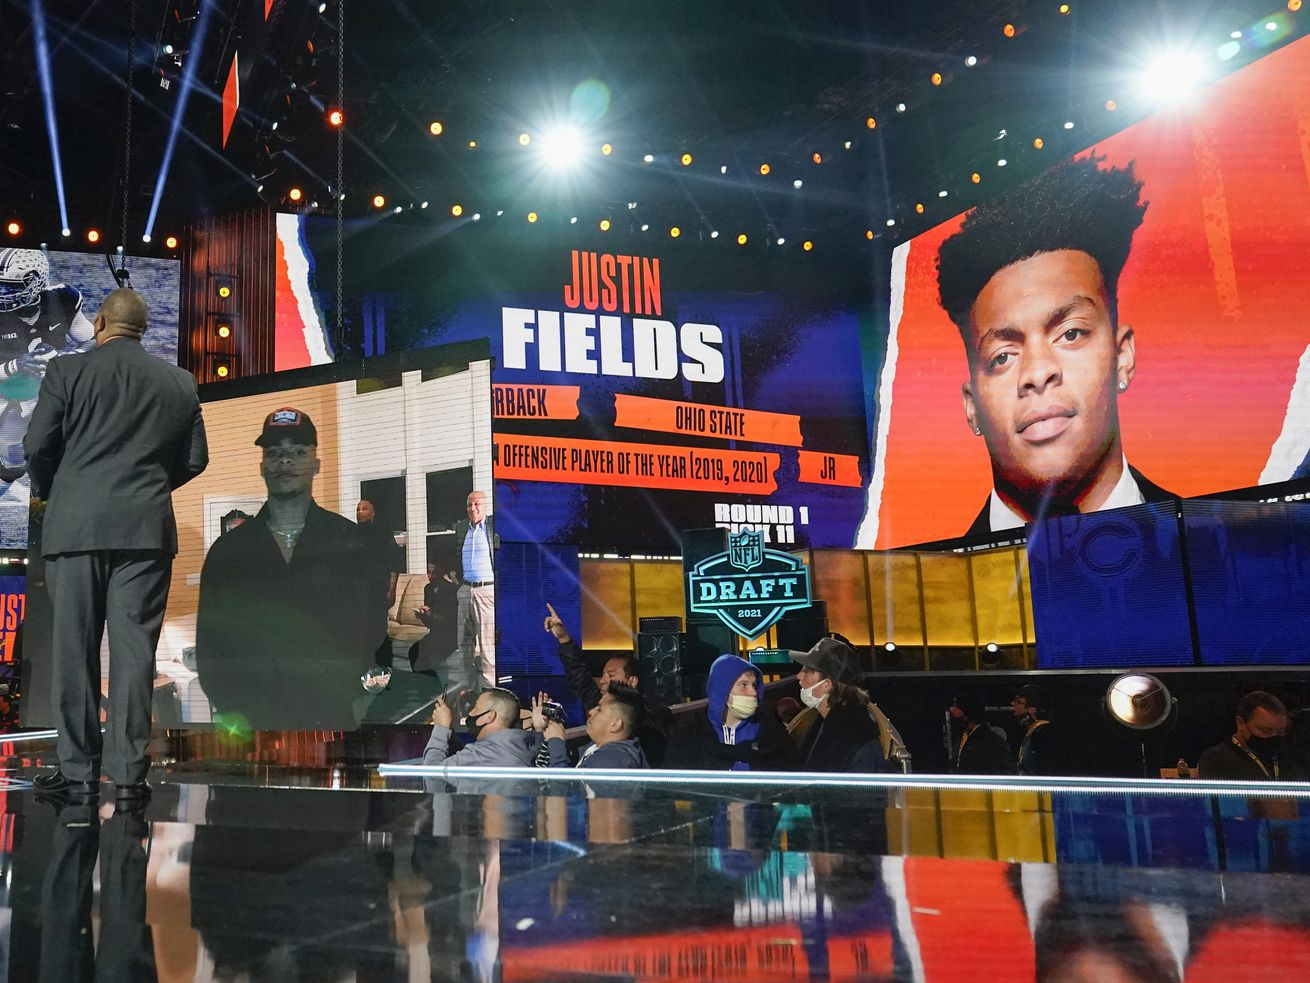 From the moment his name was announced at the NFL Draft, Bears quarterback Justin Fields has faced high expectations.